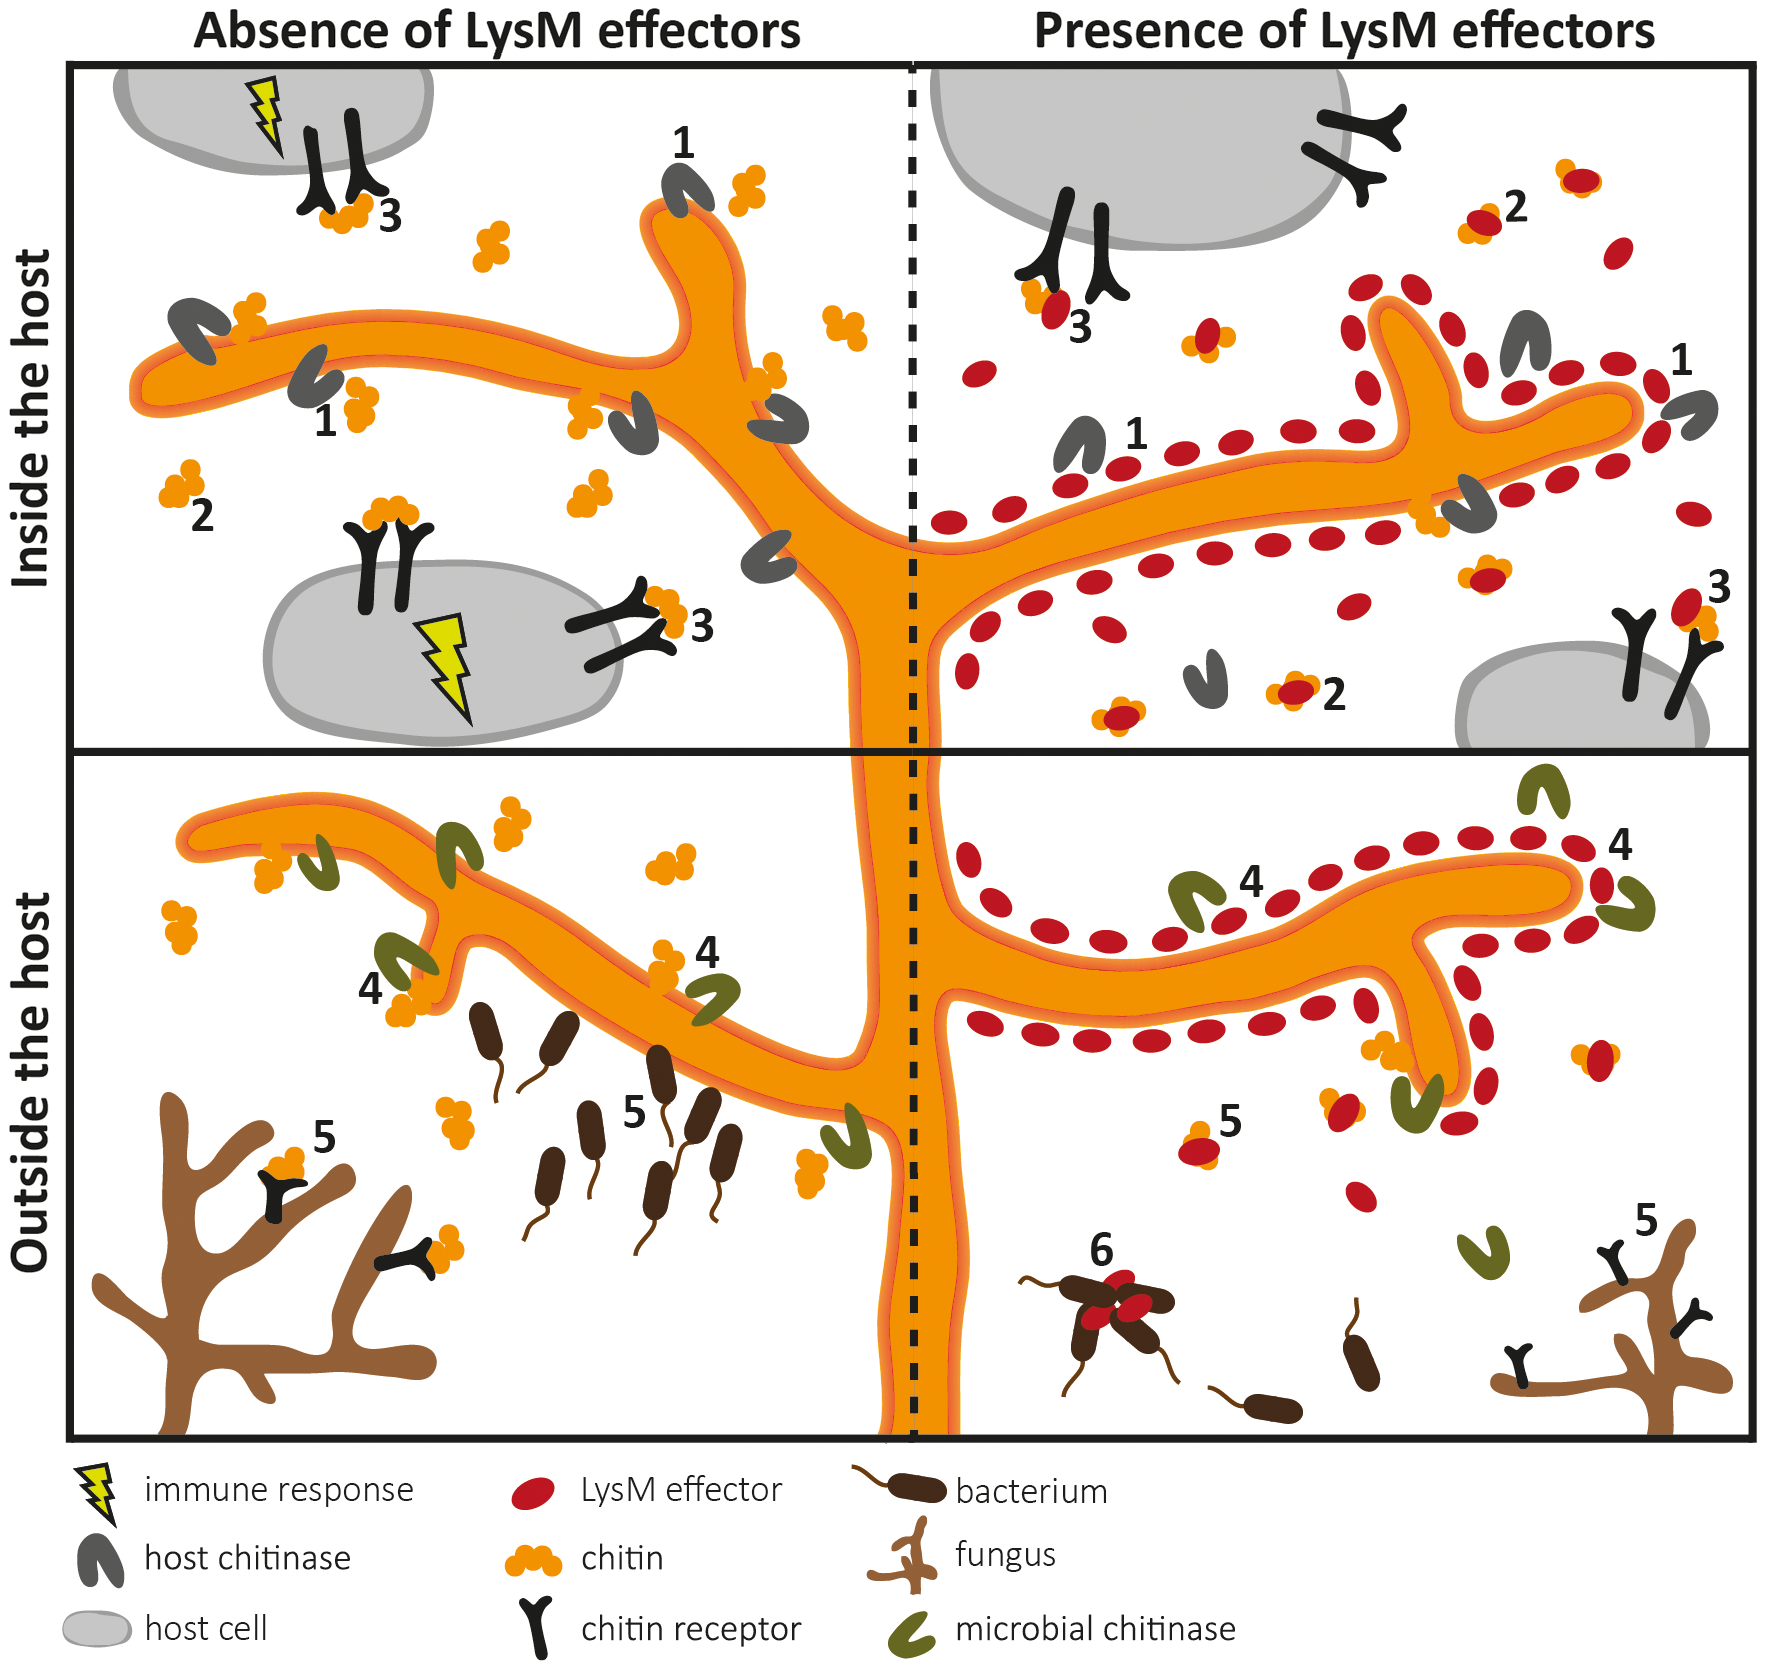 Overview of the diverse roles that fungal LysM effectors may play in fungal physiology.